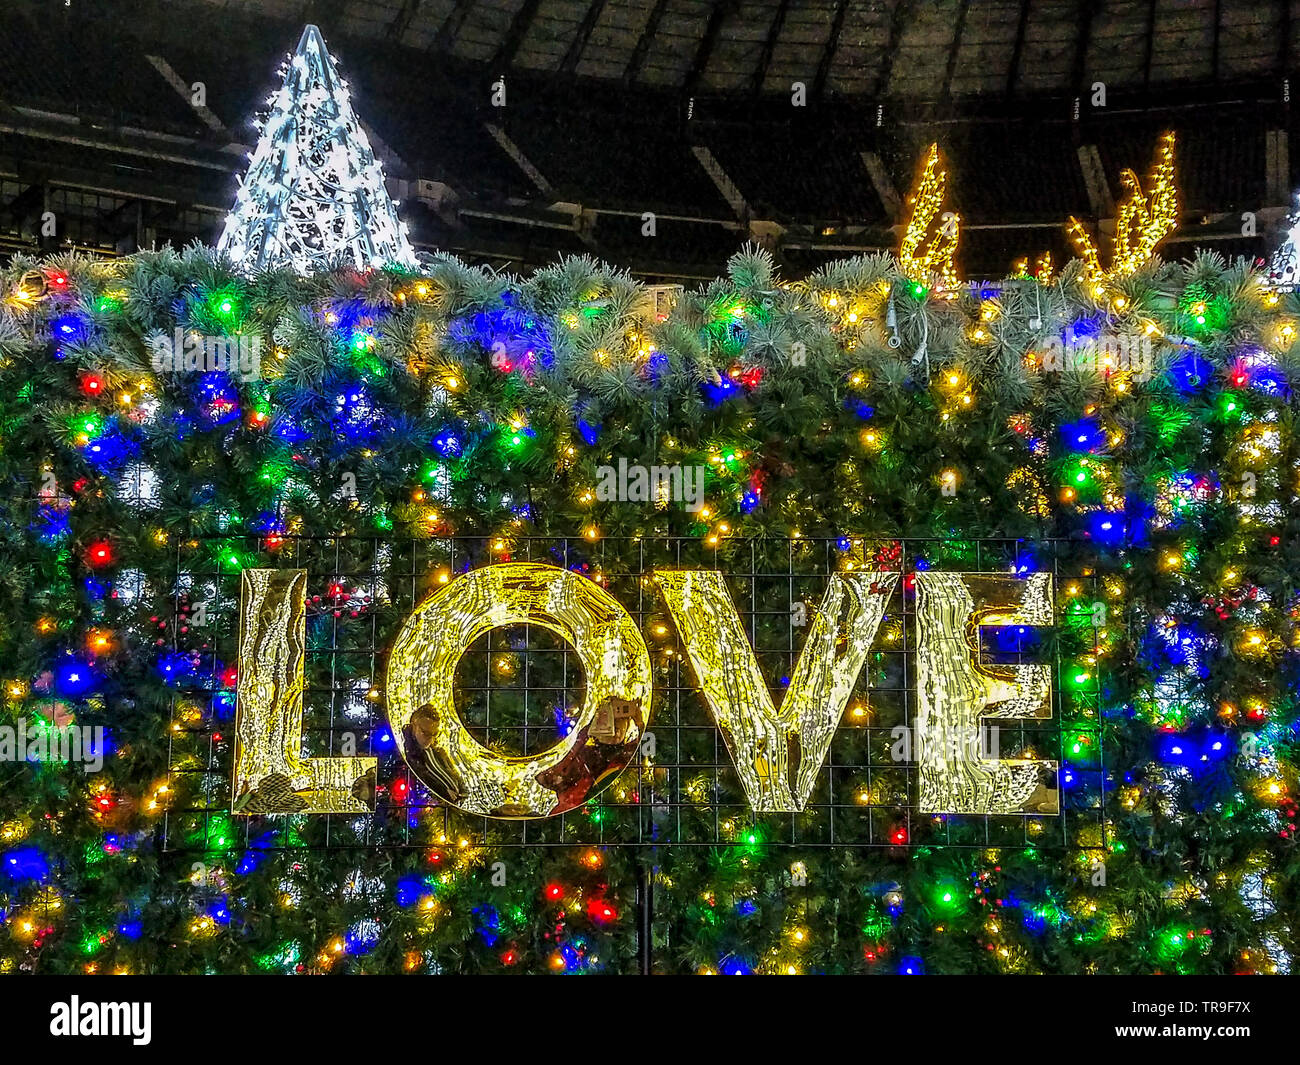 Enchant Christmas Seattle.Enchant Christmas In Seattle With The World S Longest